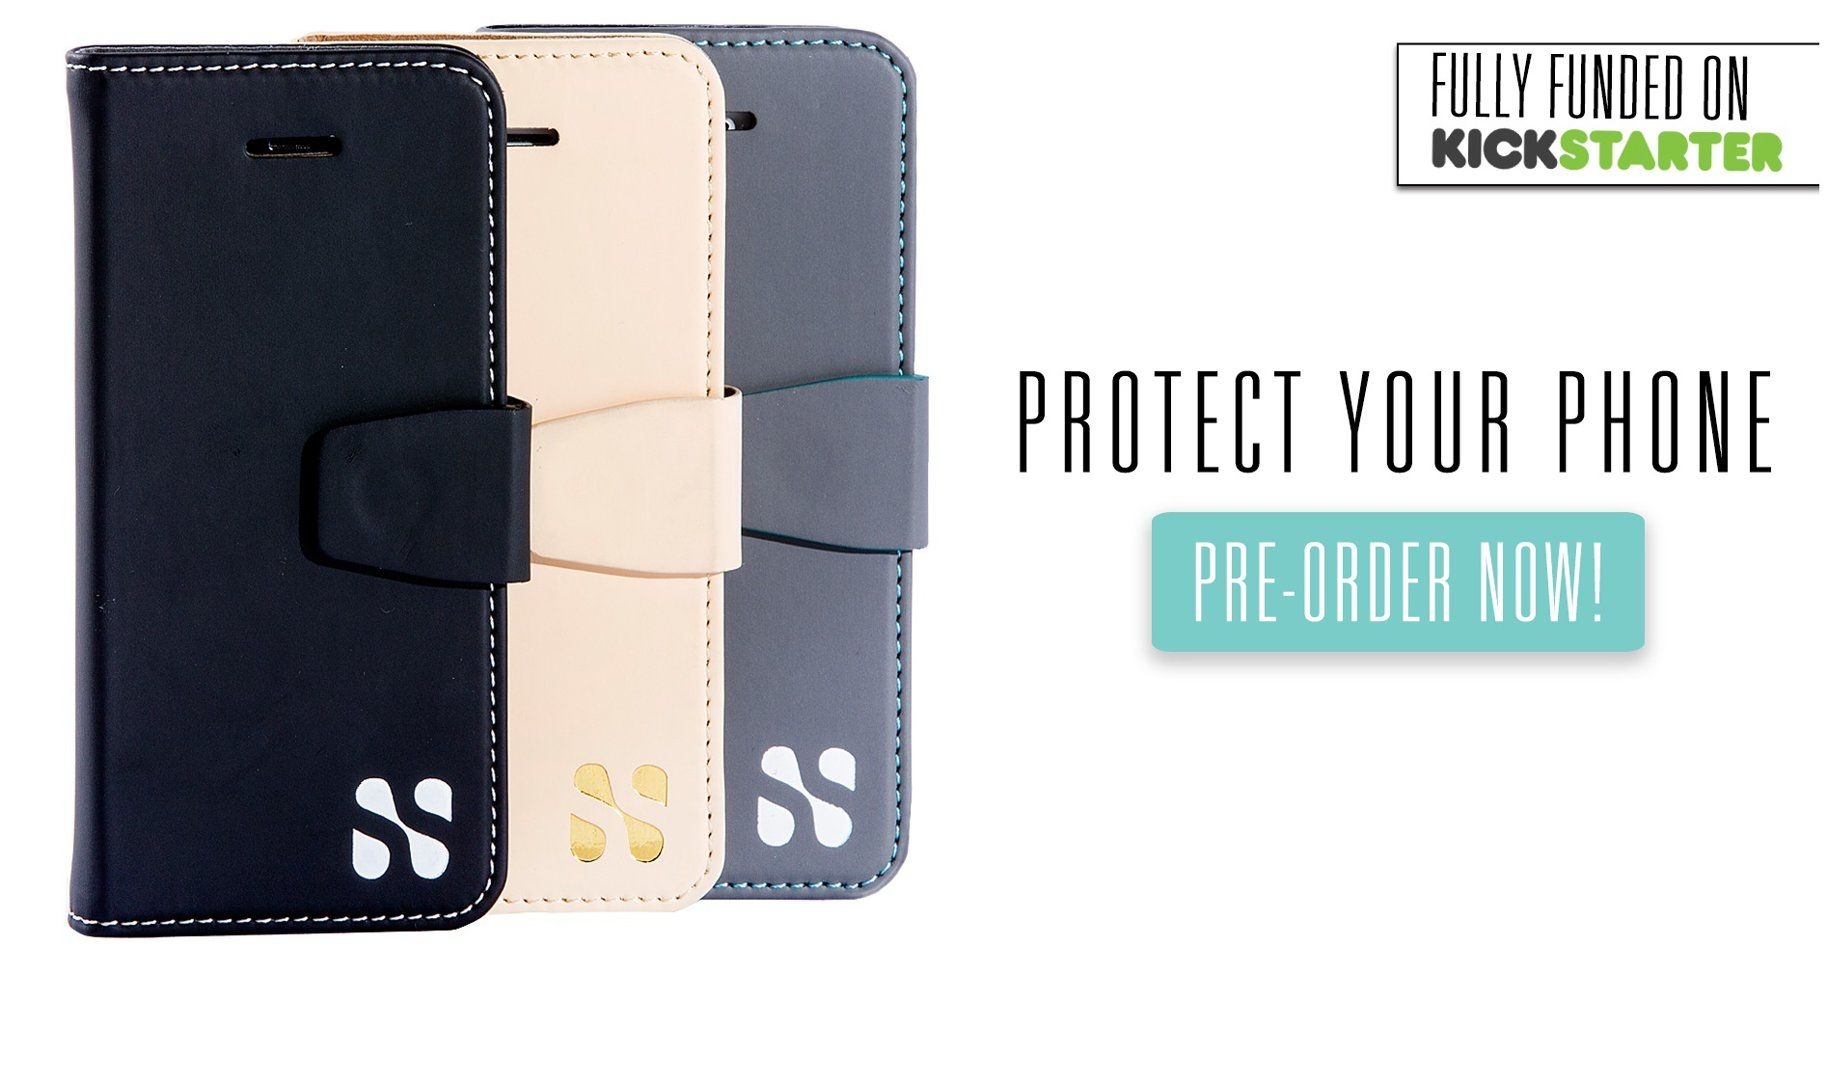 SafeSleeve: The Anti-Radiation Cell Phone Case